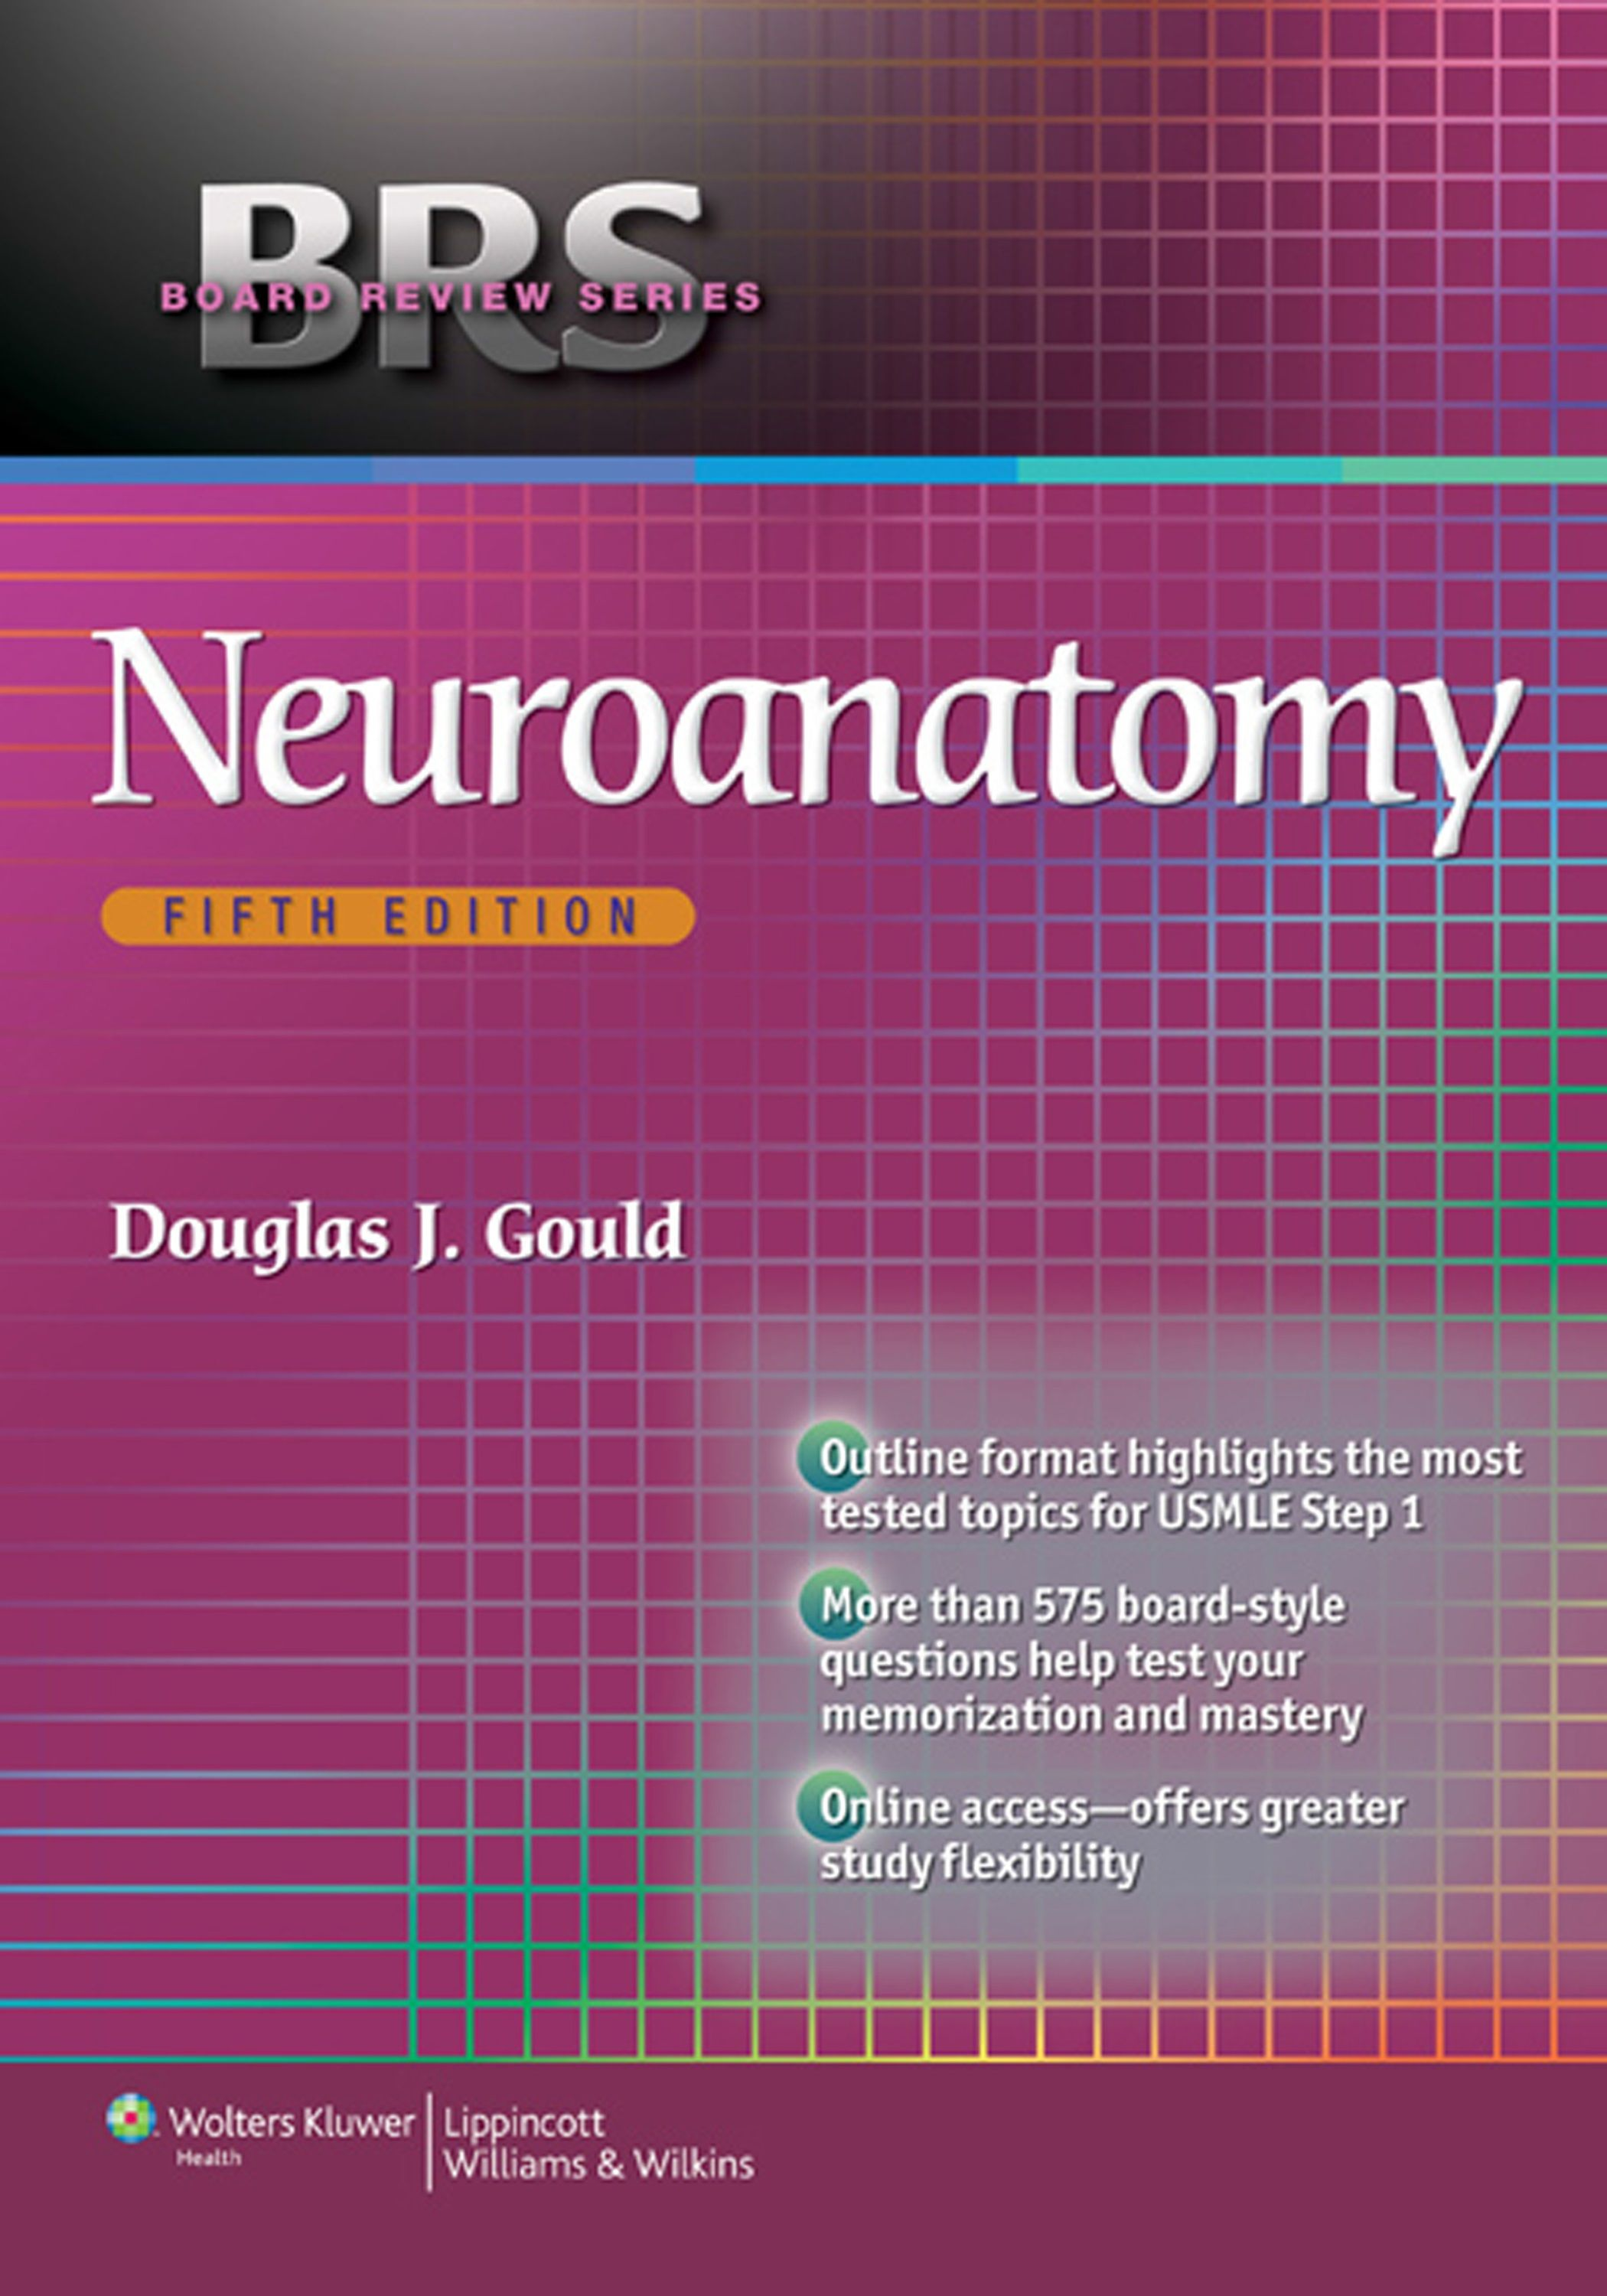 Brs neuroanatomy 5th edition pdf dc pinterest pdf medical brs neuroanatomy 5th edition pdf fandeluxe Gallery